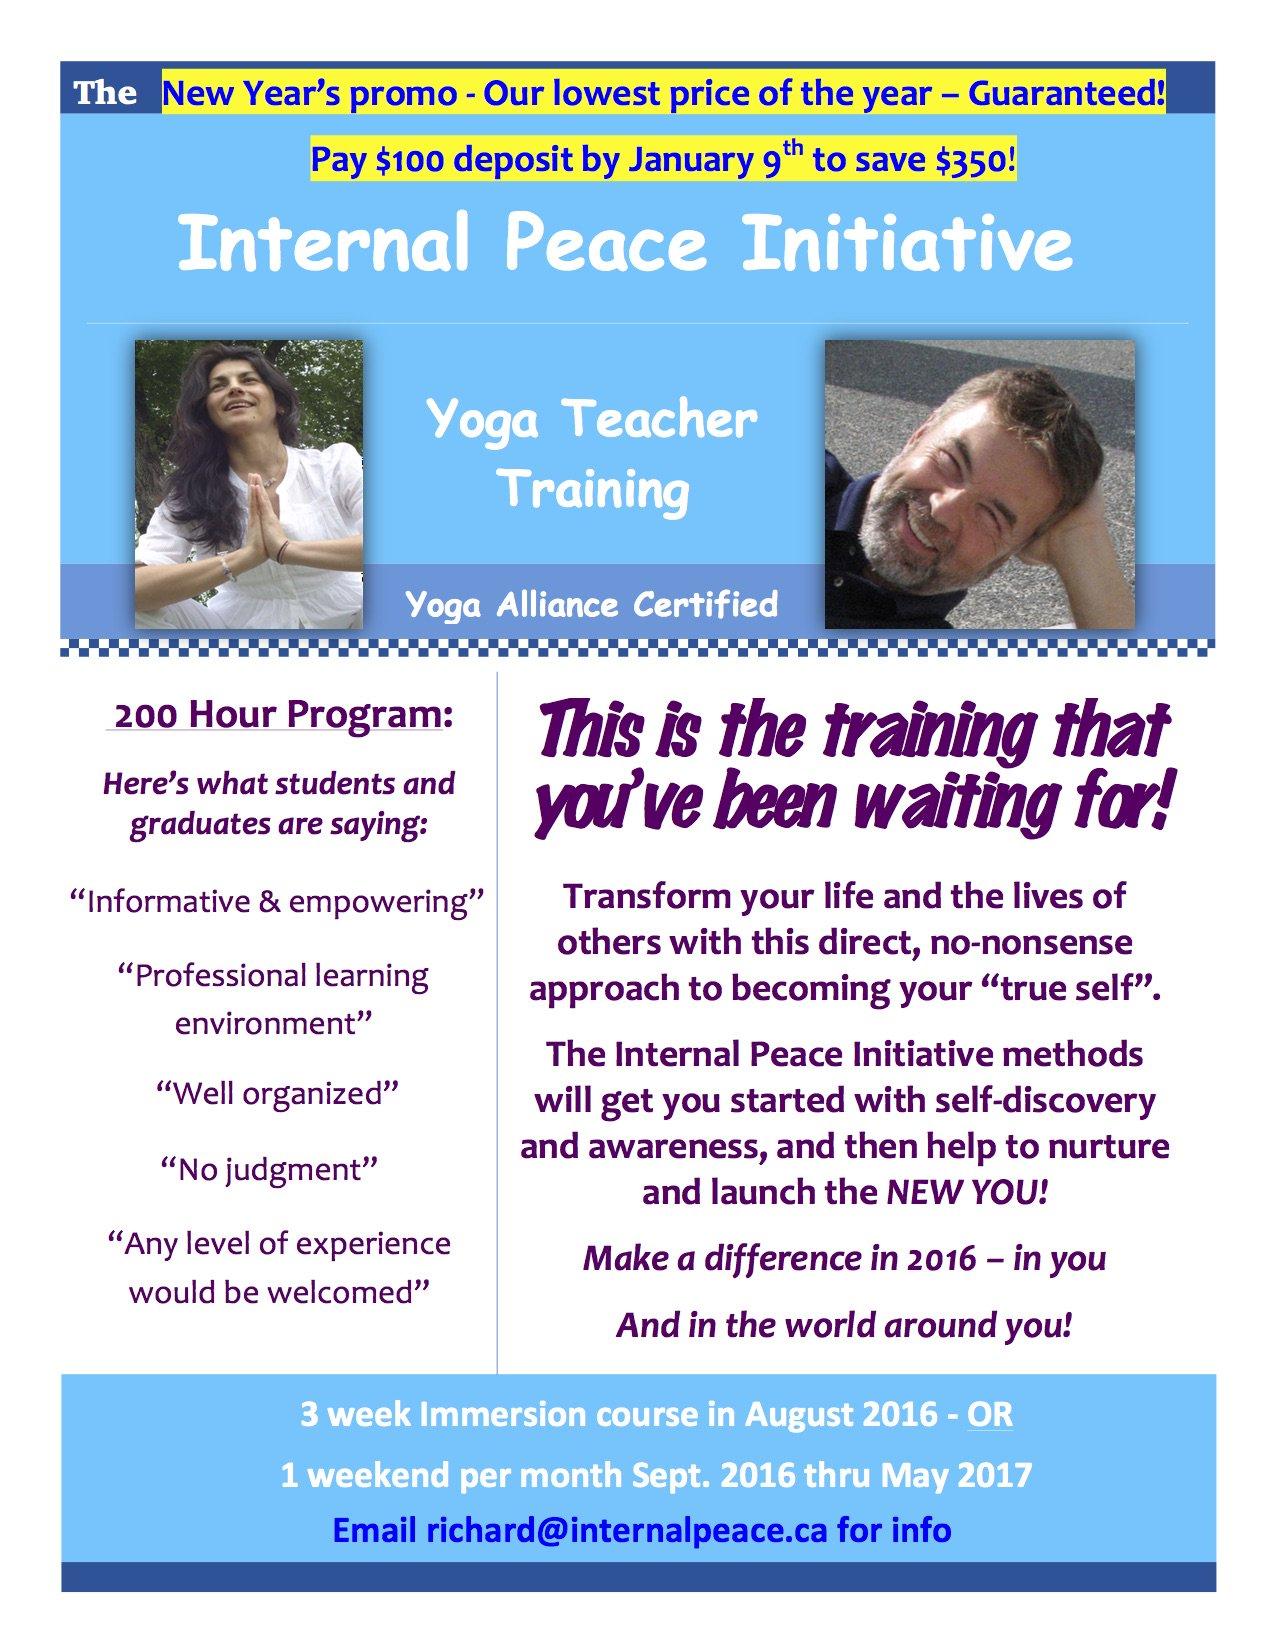 alina calinescu on twitter therapeutic yoga teacher training with internal_peace and alivebyalina in lndont 2 formats to choose from